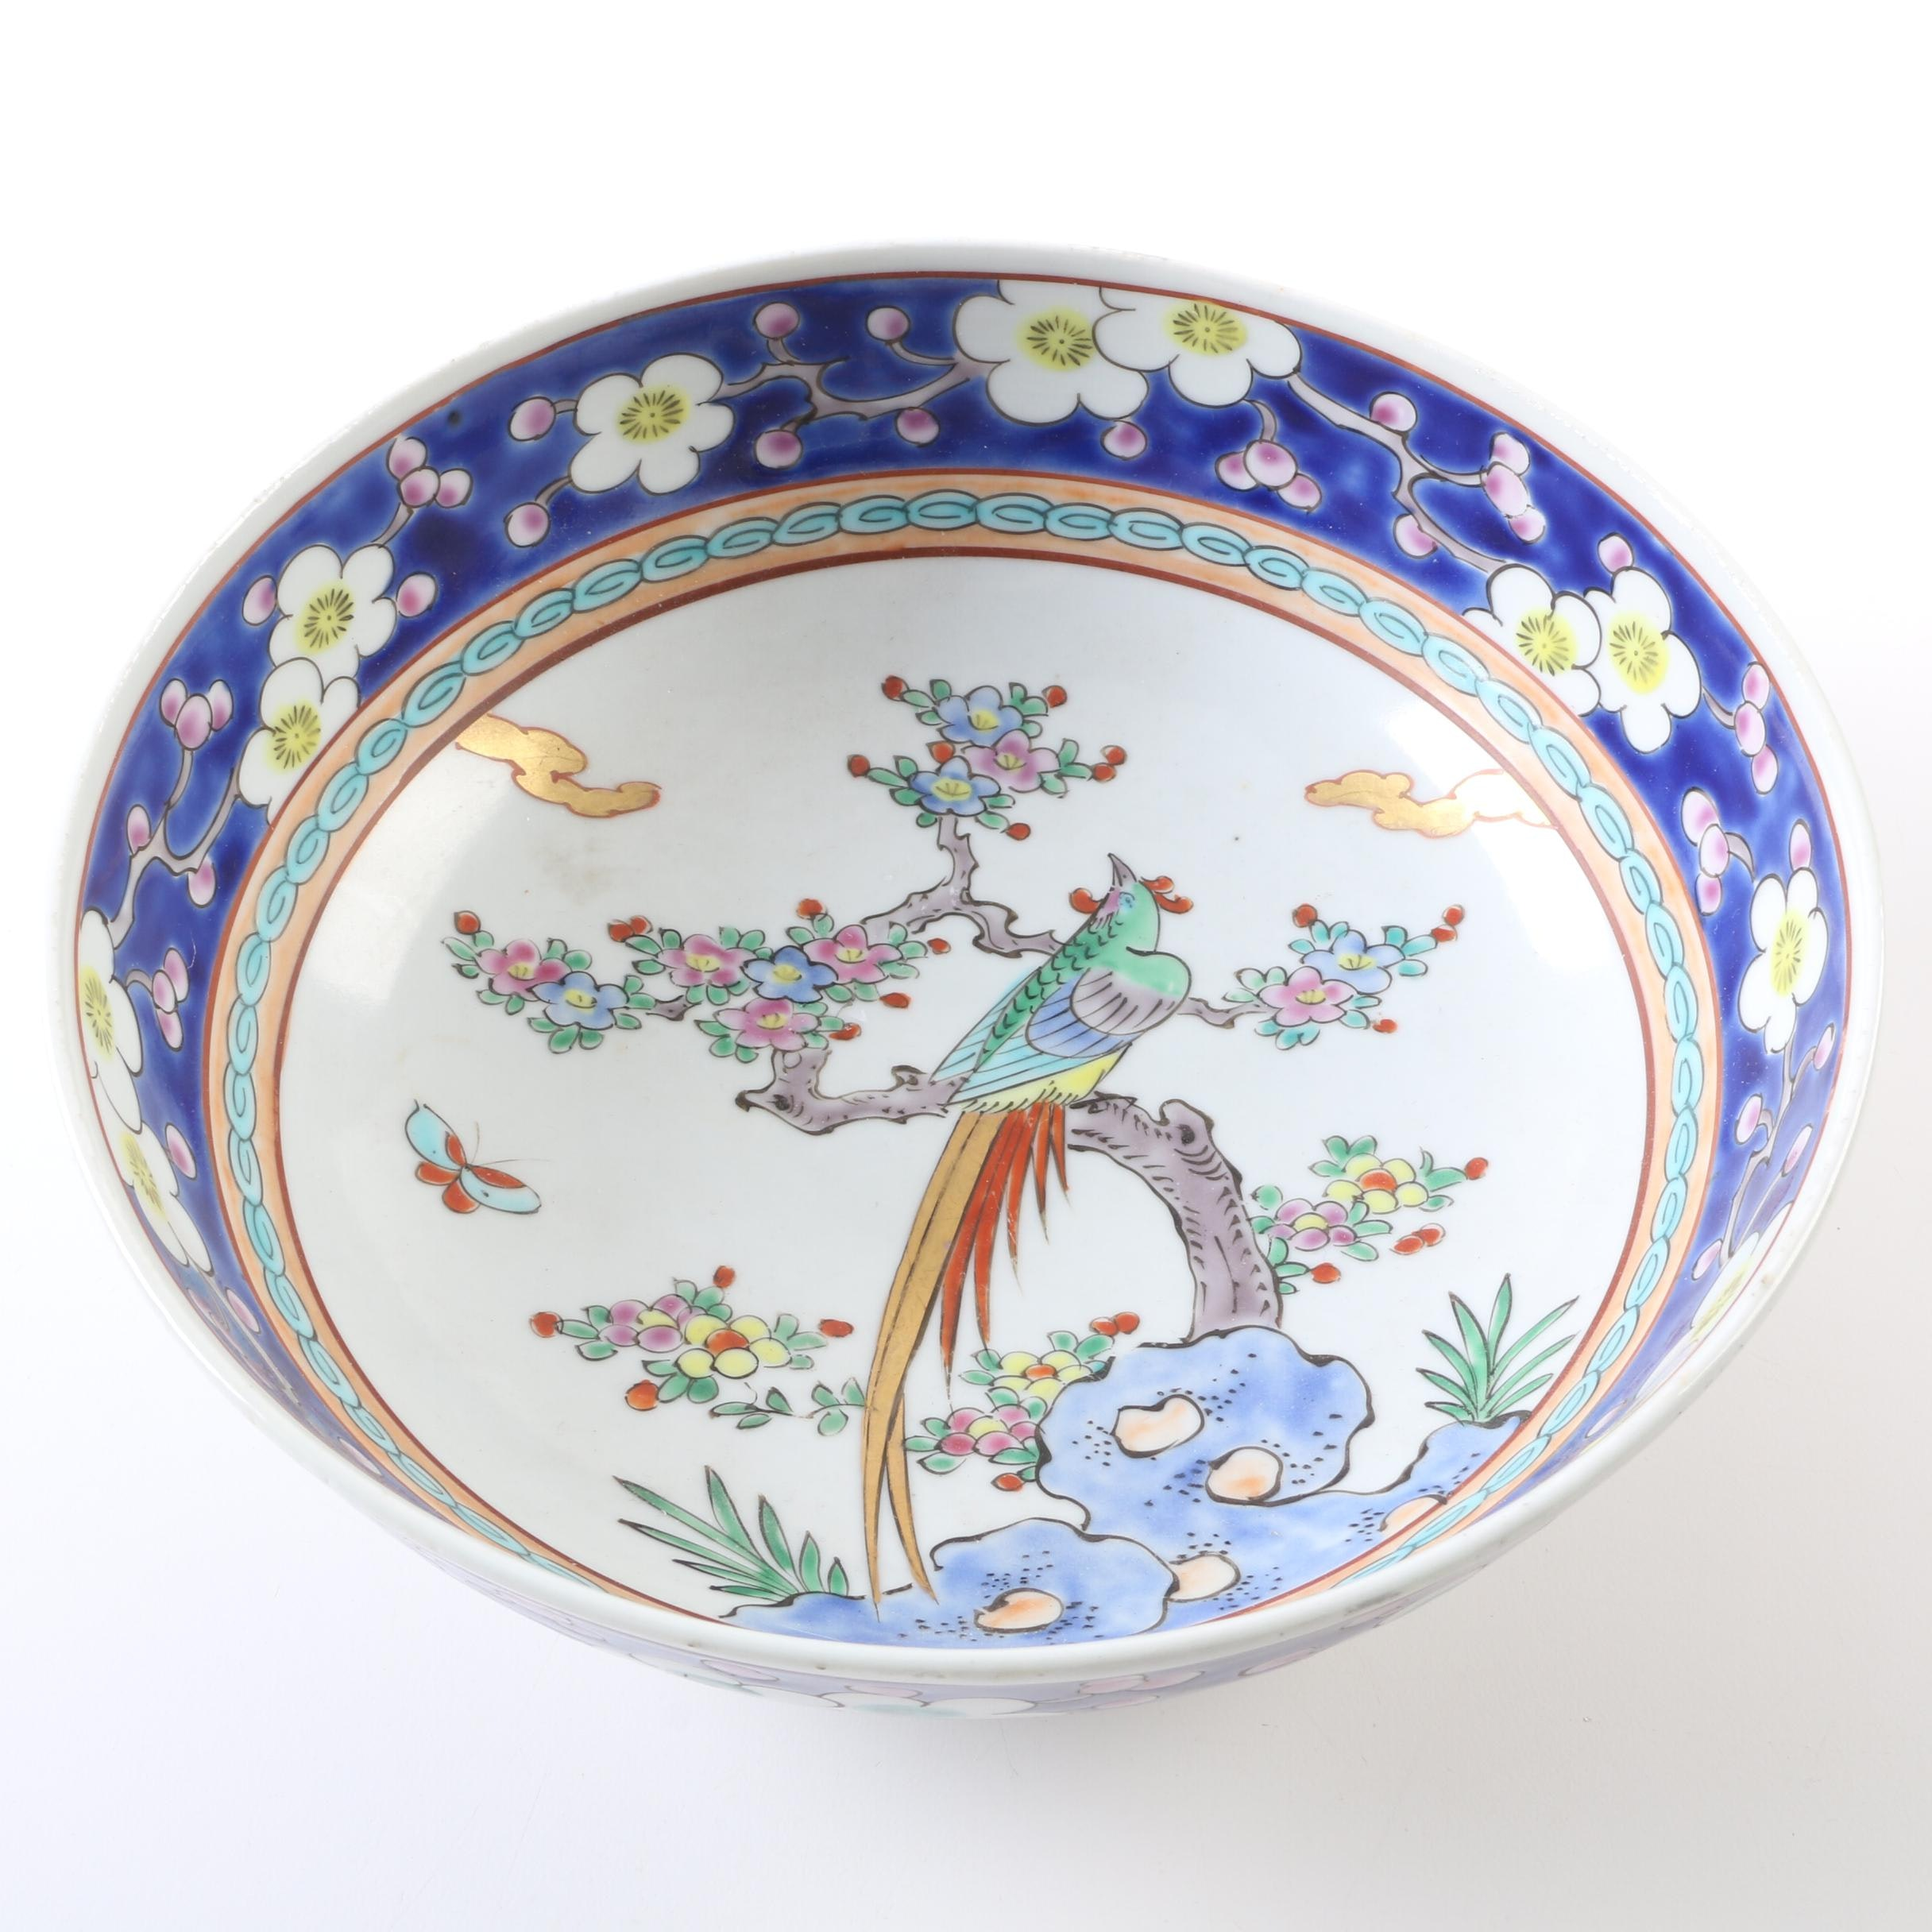 Chinese Hand-Painted Footed Porcelain Bowl